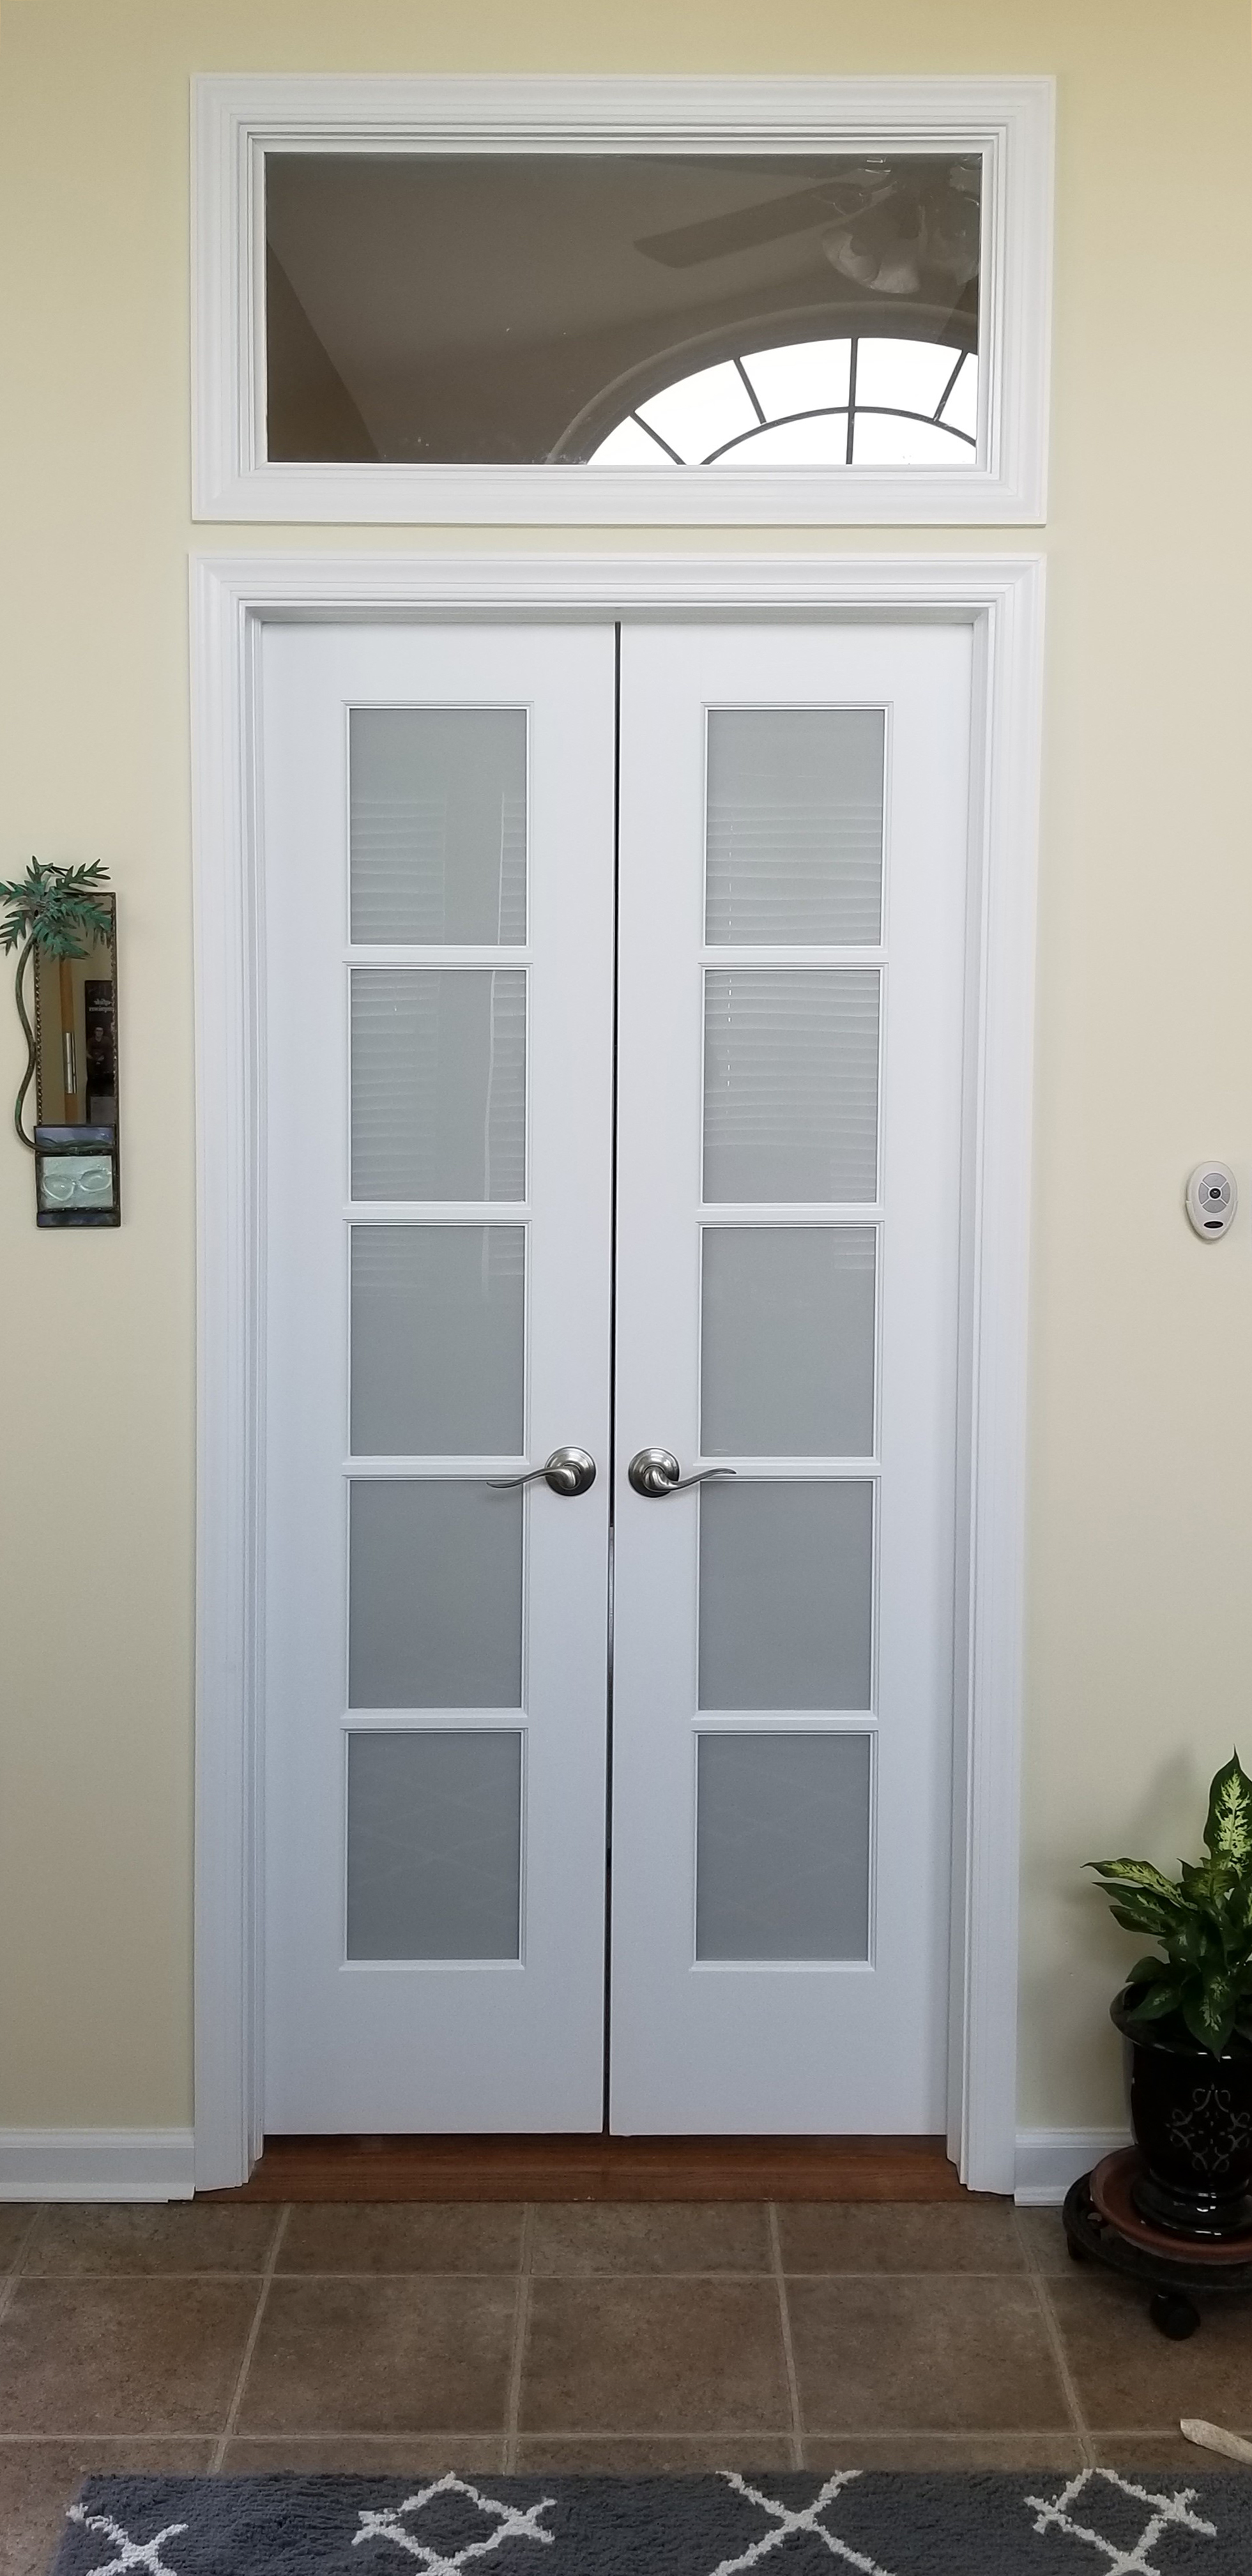 These french style double doors have ball catches at the top and a transom custom window above.